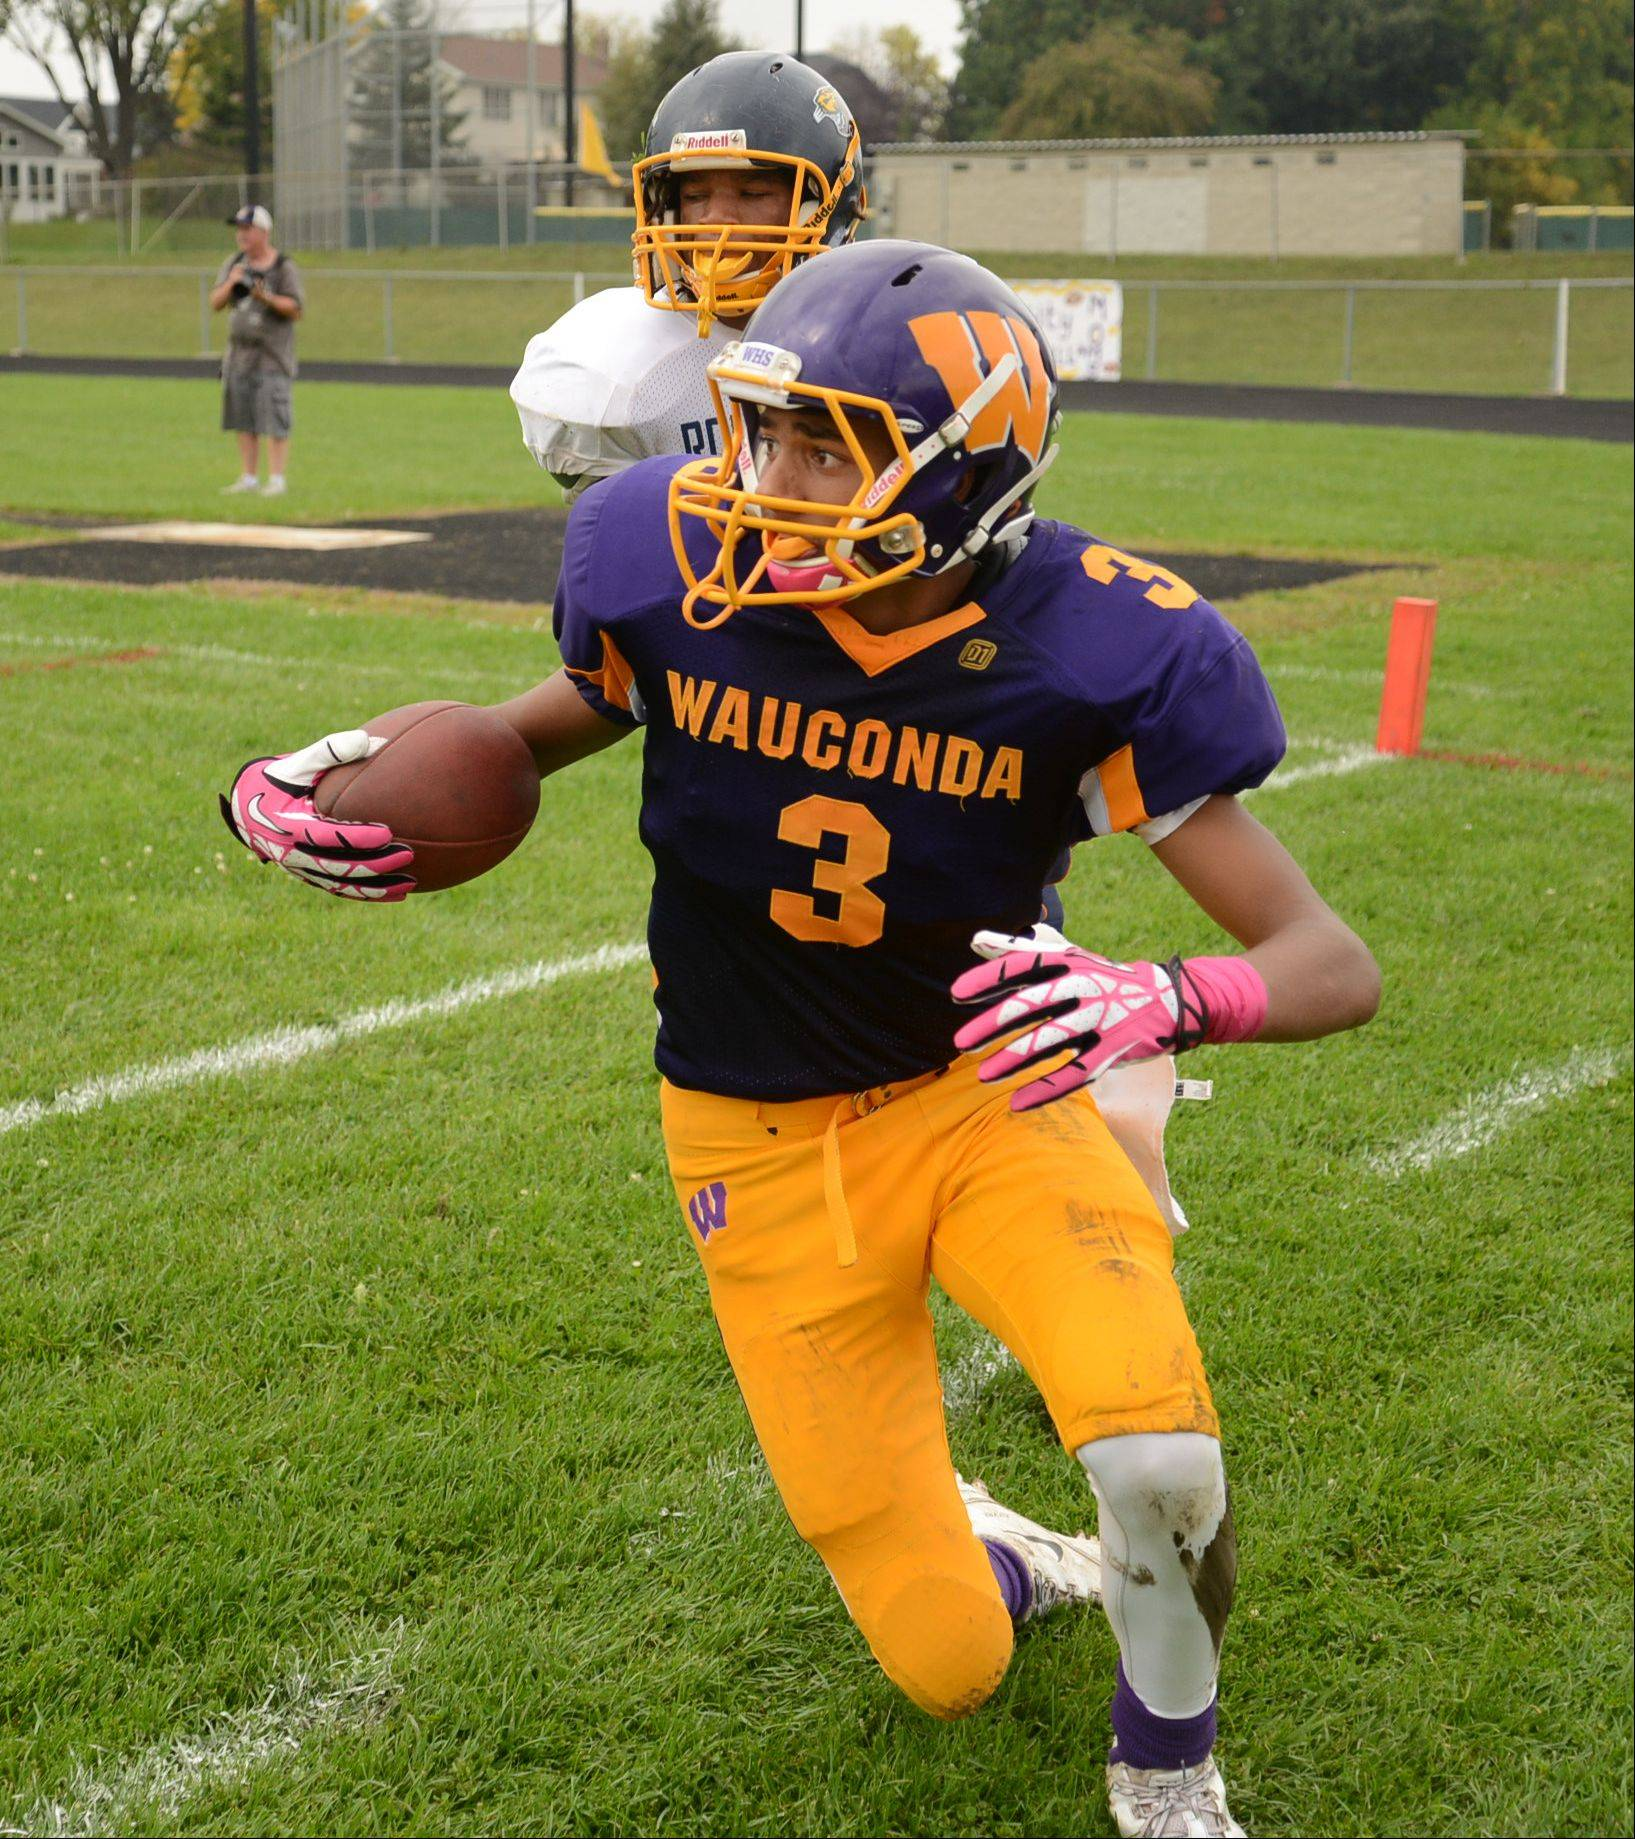 Wauconda High could be next school with artificial turf field